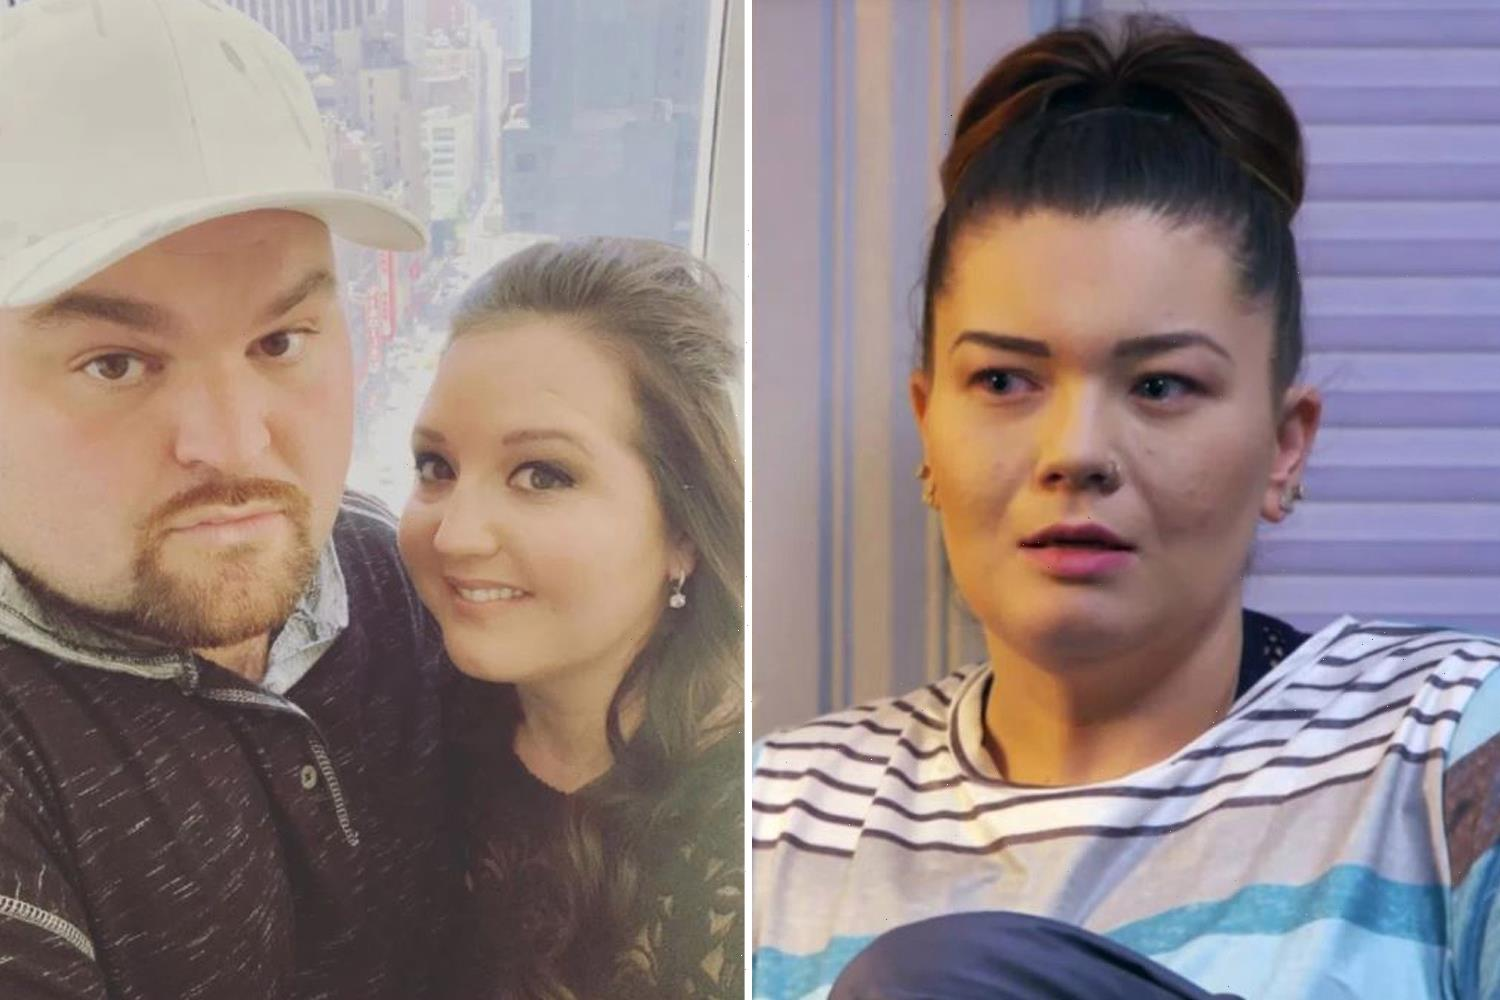 Teen Mom fans claim that Amber Portwood's ex Gary Shirley should take in her son James amid battle with Andrew Glennon